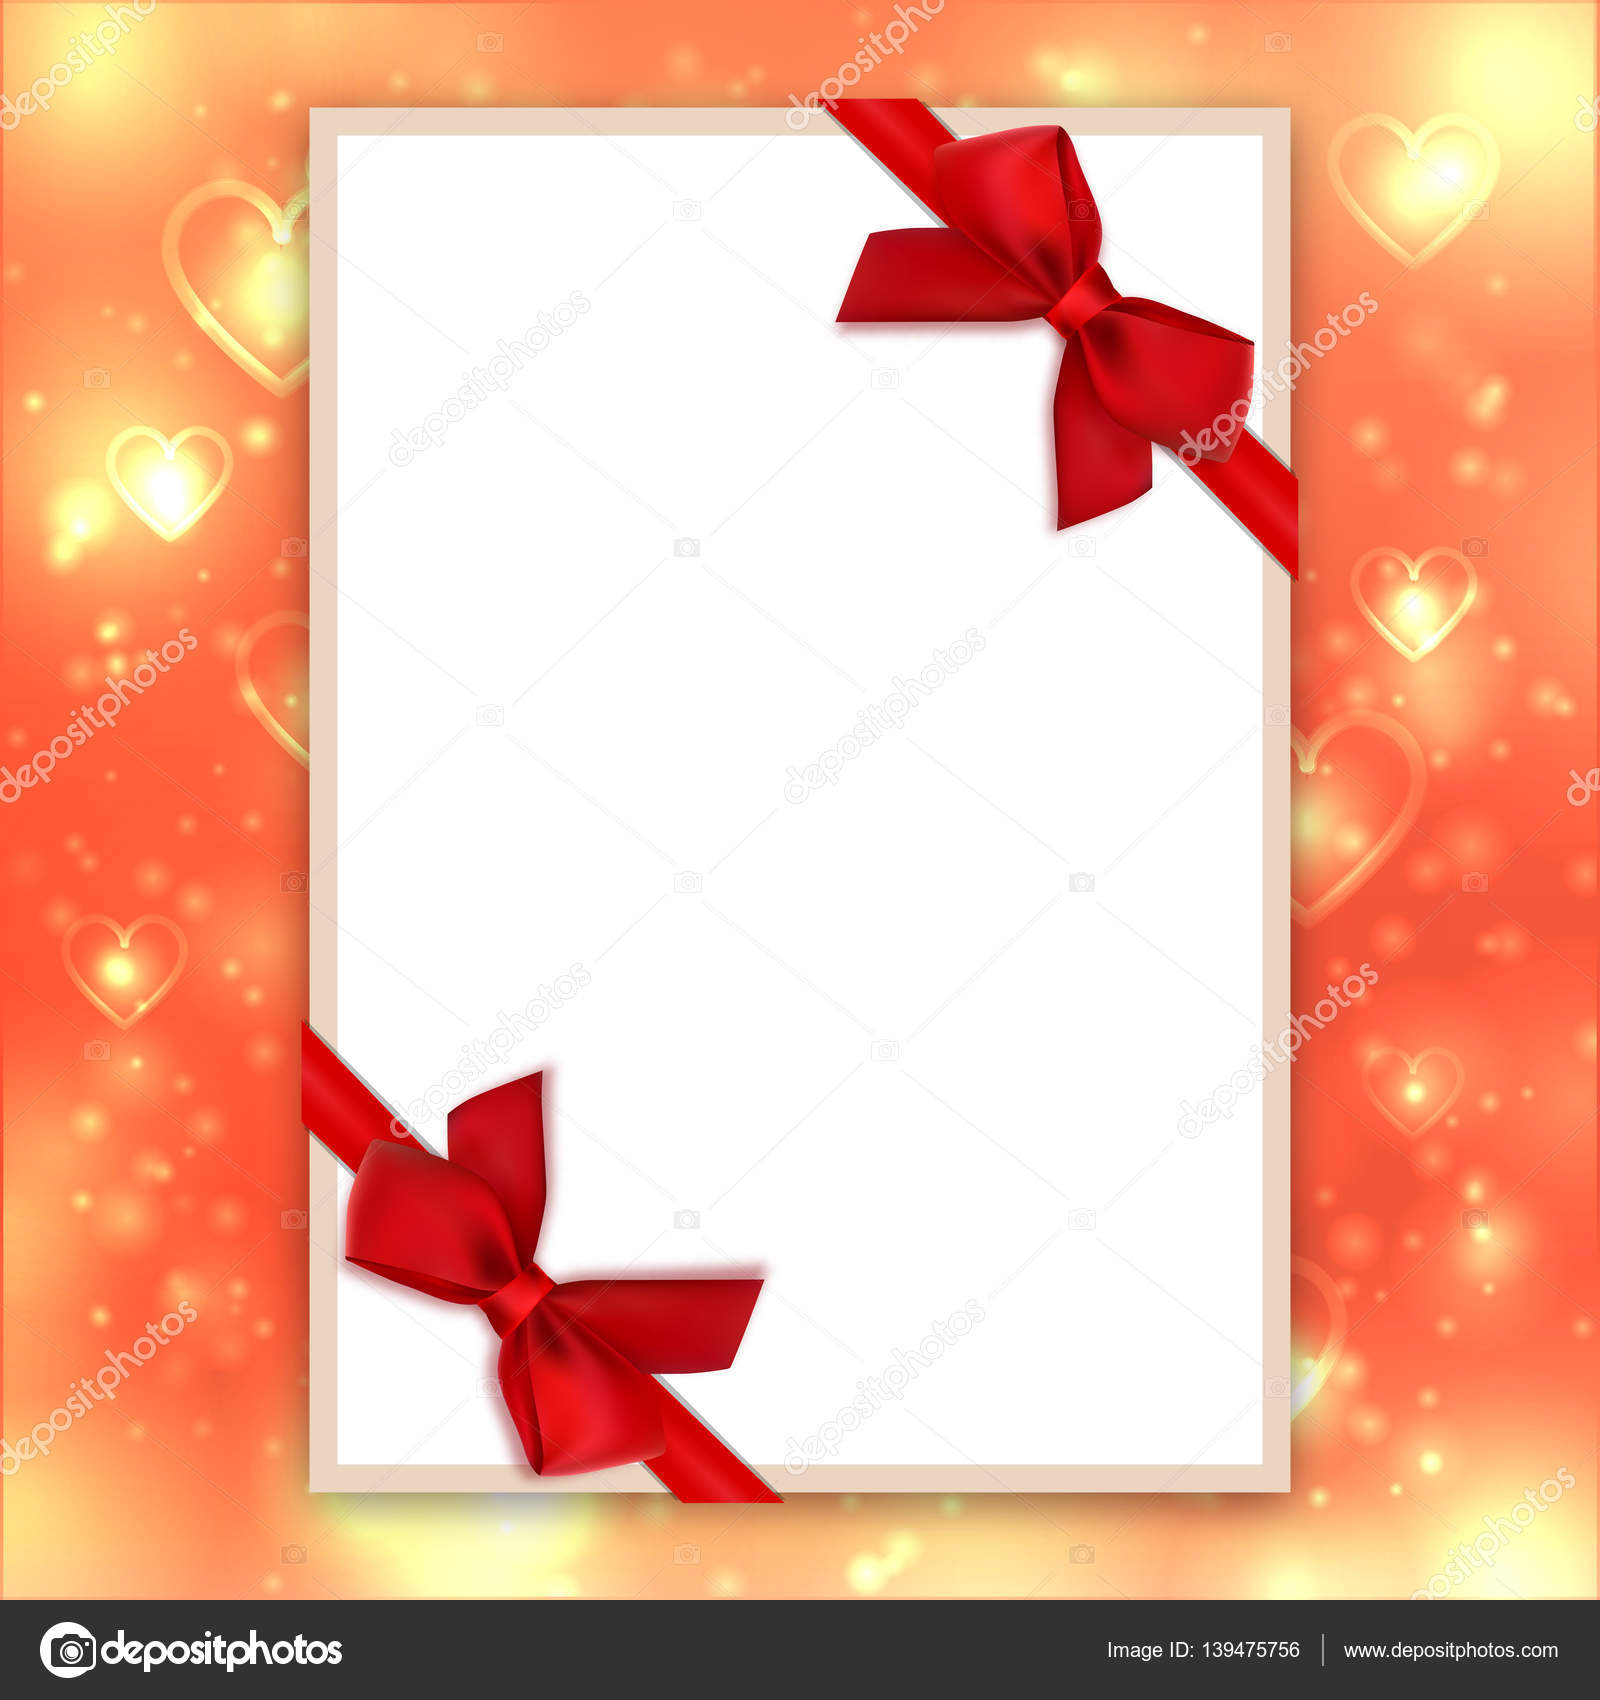 Blank greeting card red bows ribbons valentine background love blank greeting card red bows ribbons valentine background love backdrop stock vector m4hsunfo